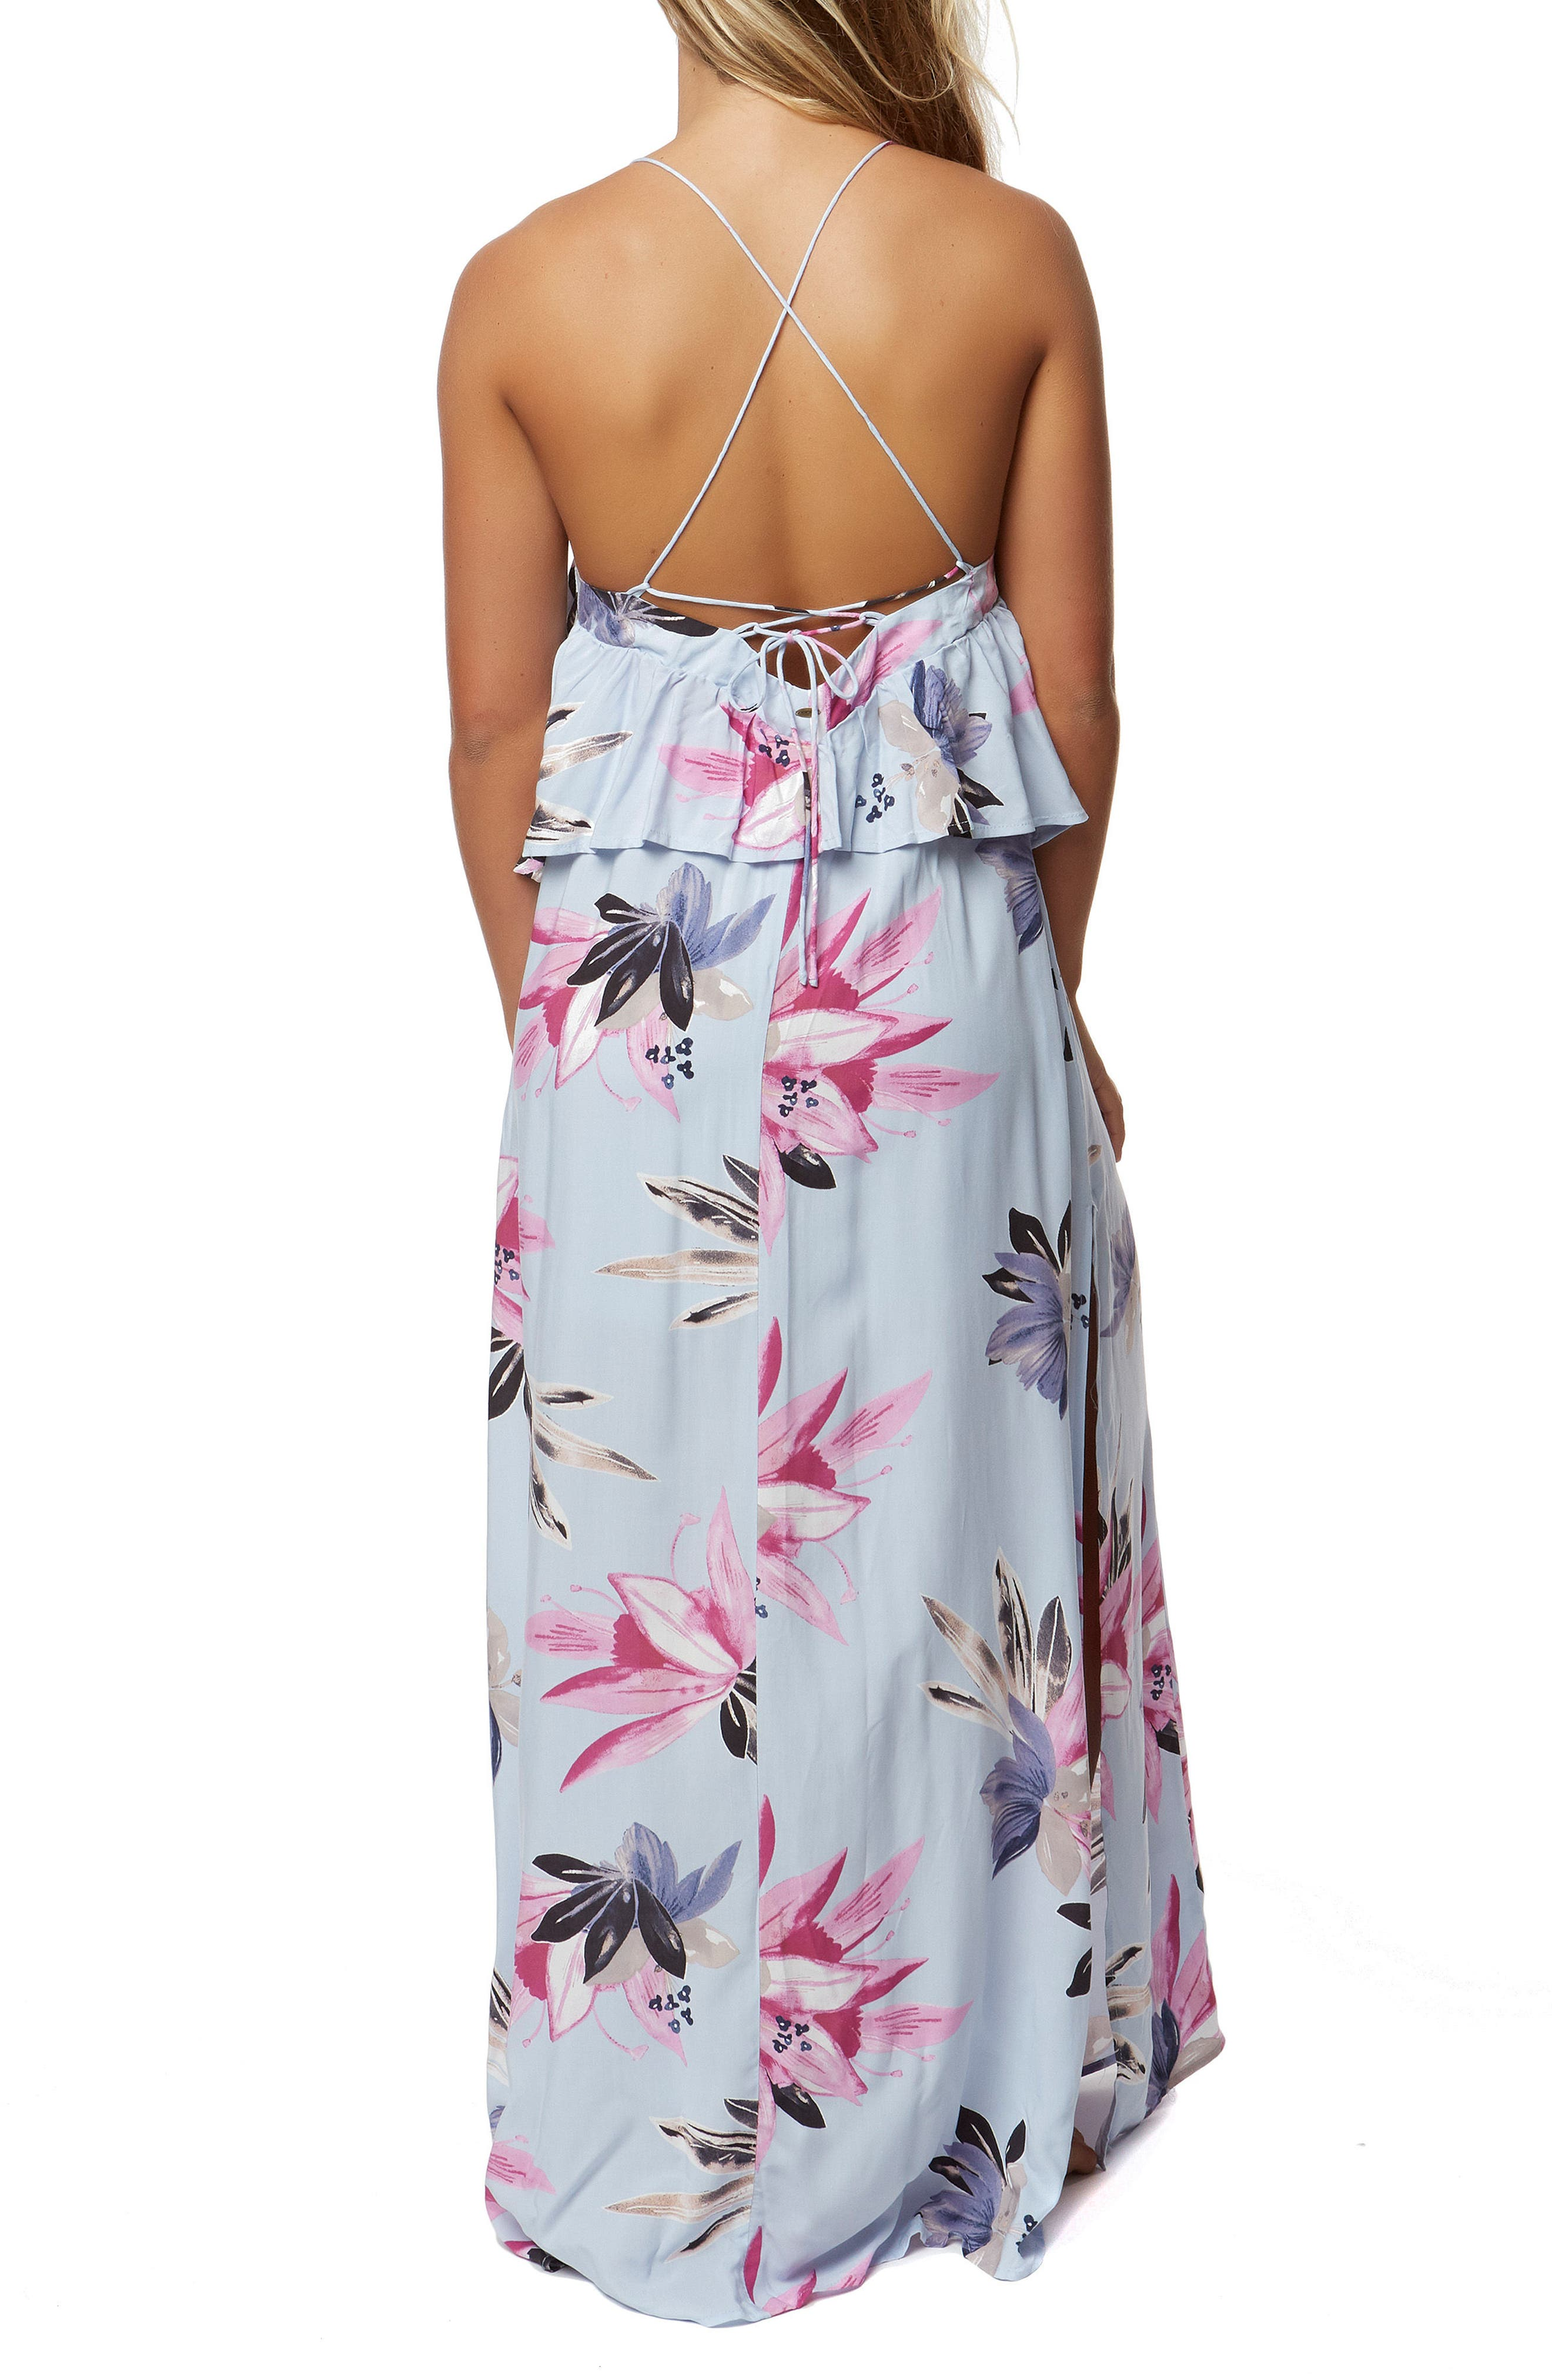 Milly Maxi Dress,                             Alternate thumbnail 2, color,